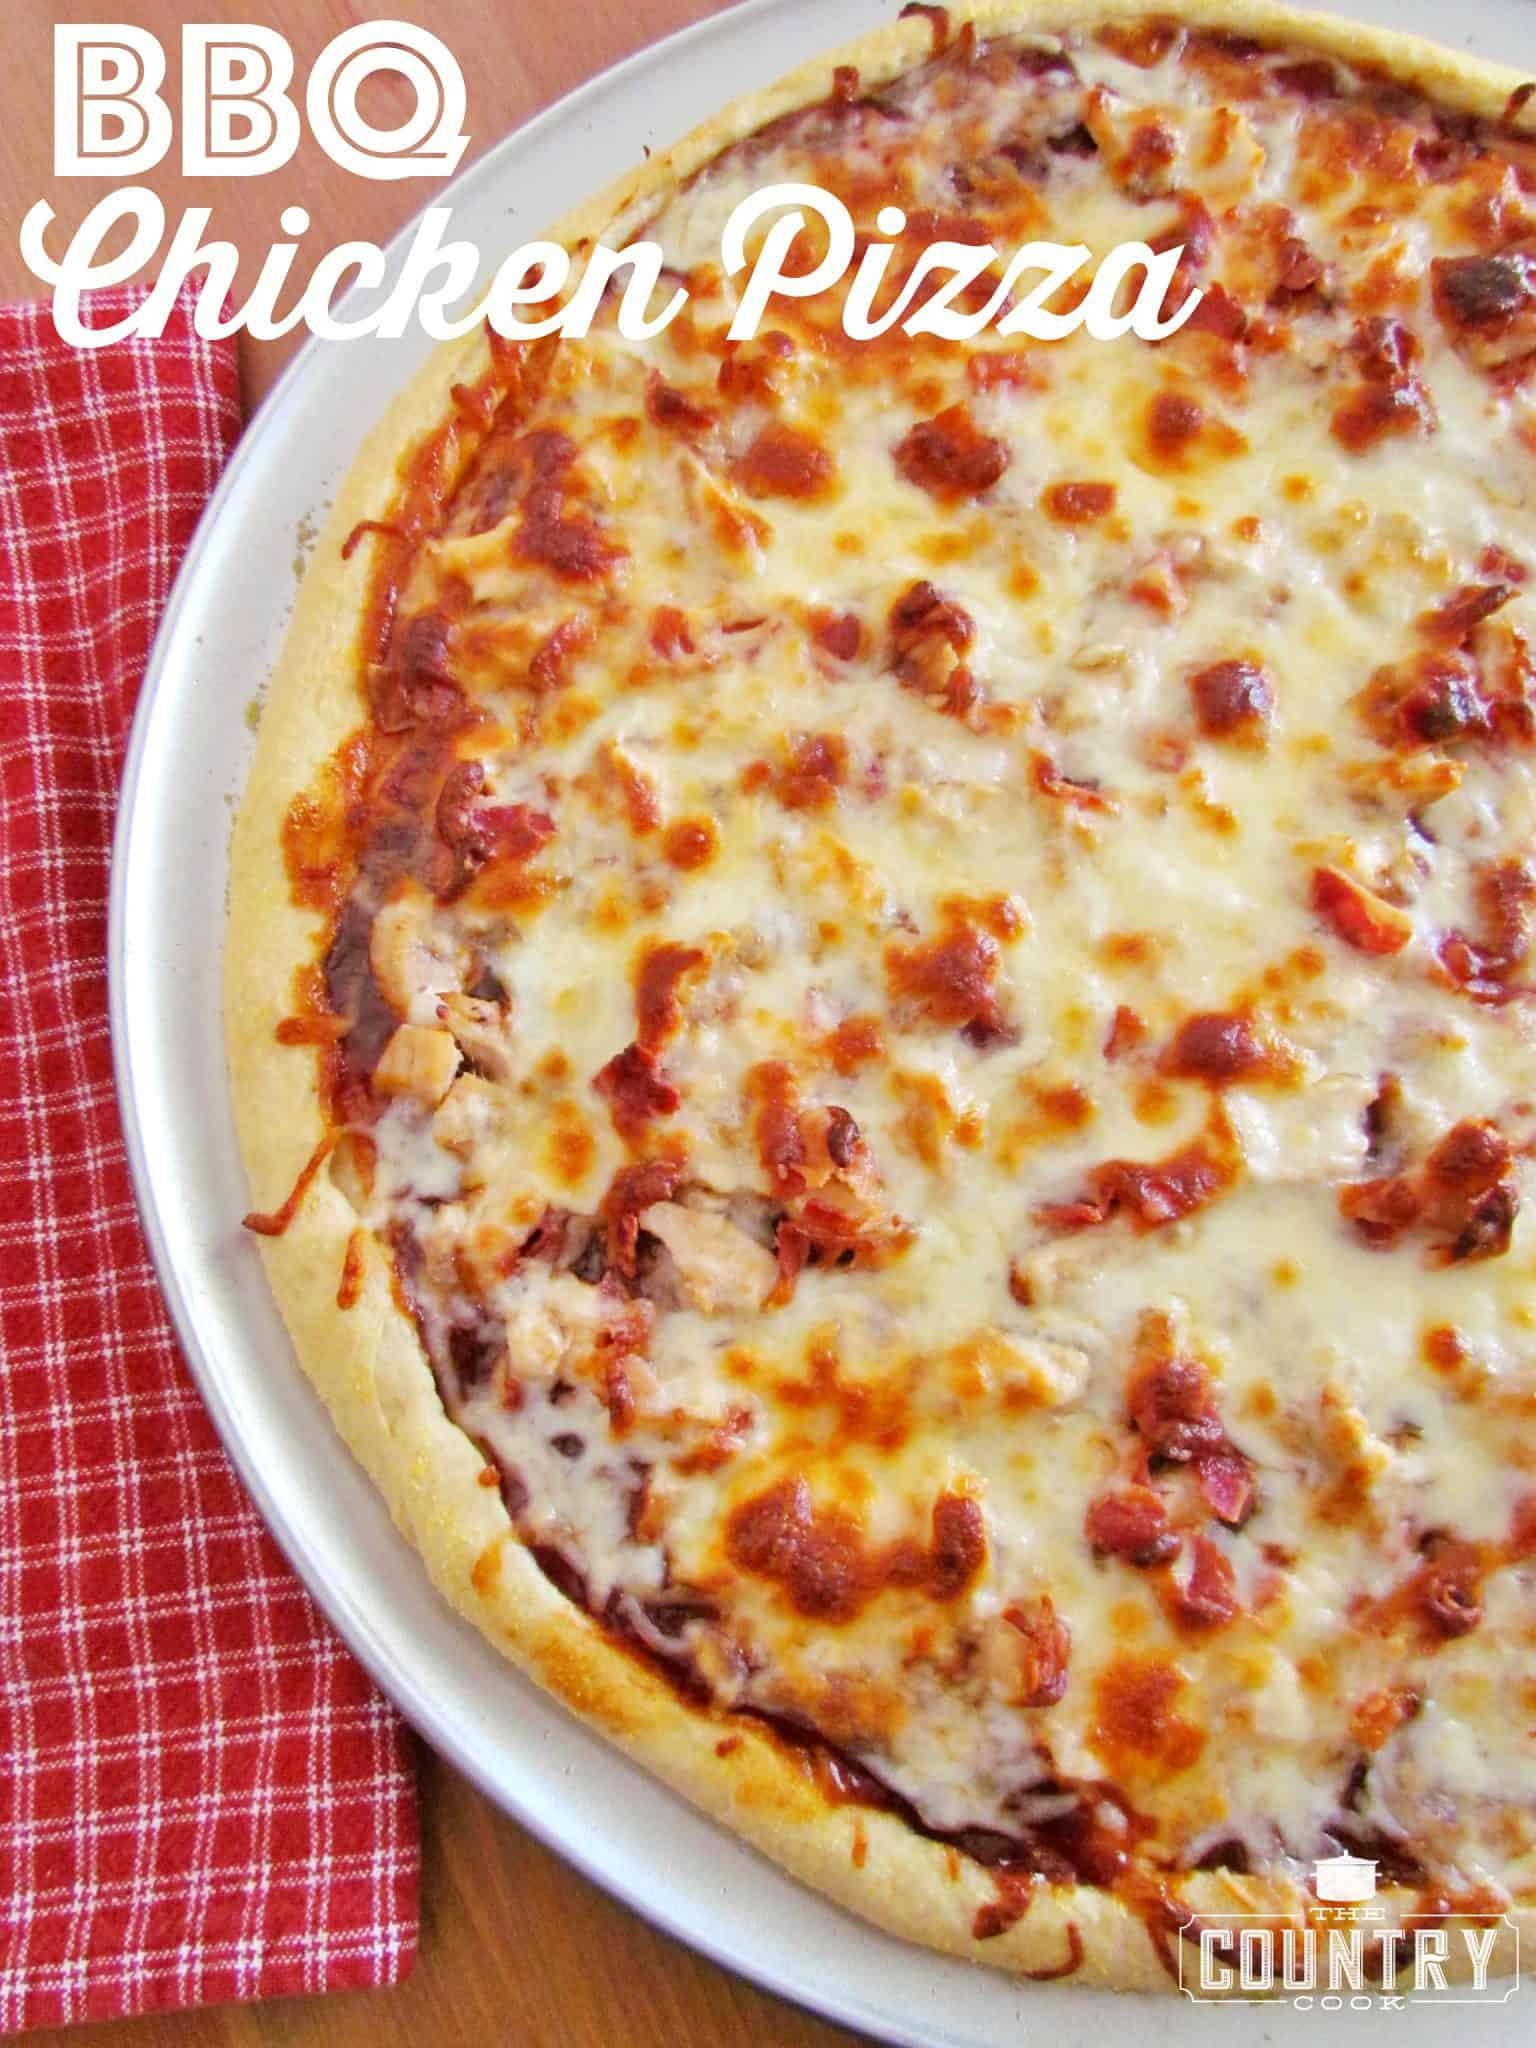 BBQ Chicken Pizza - The Country Cook